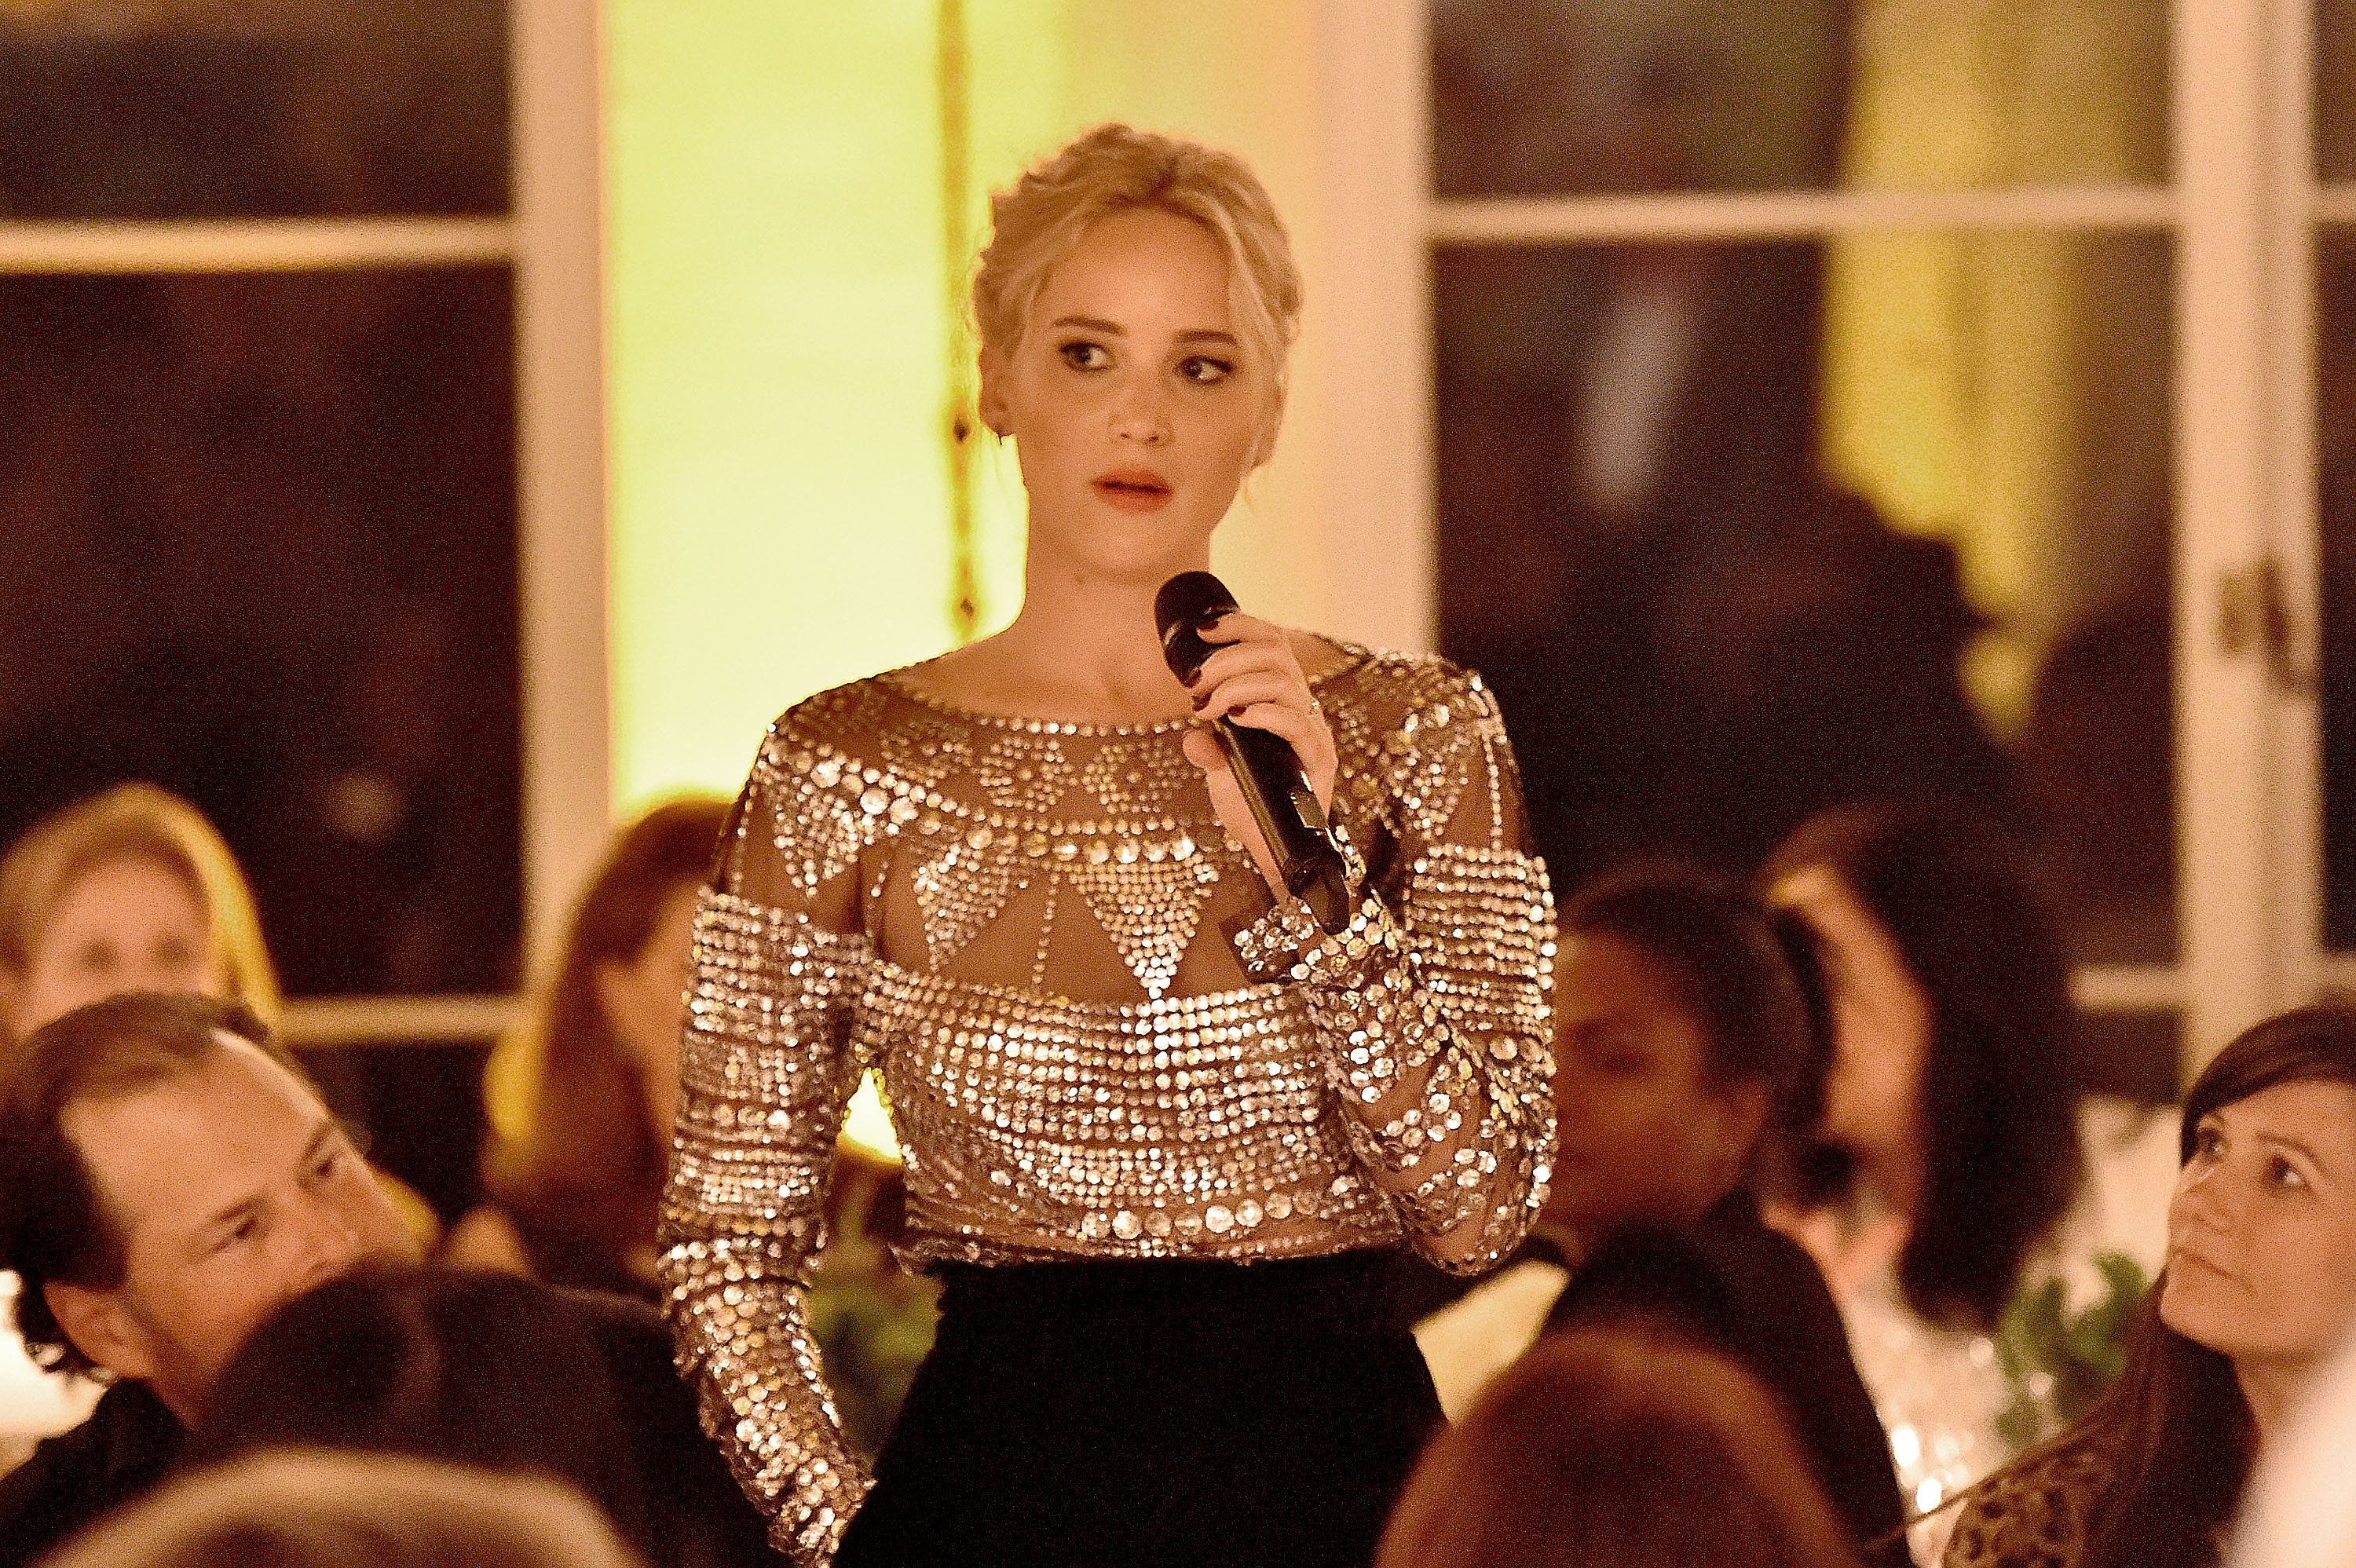 BEVERLY HILLS, CA - FEBRUARY 25:  Actress Jennifer Lawrence attends The Dinner For Equality co-hosted by Patricia Arquette and Marc Benioff on February 25, 2016 in Beverly Hills, California.  (Photo by Mike Windle/Getty Images for Weinstein Carnegie Philanthropic Group)